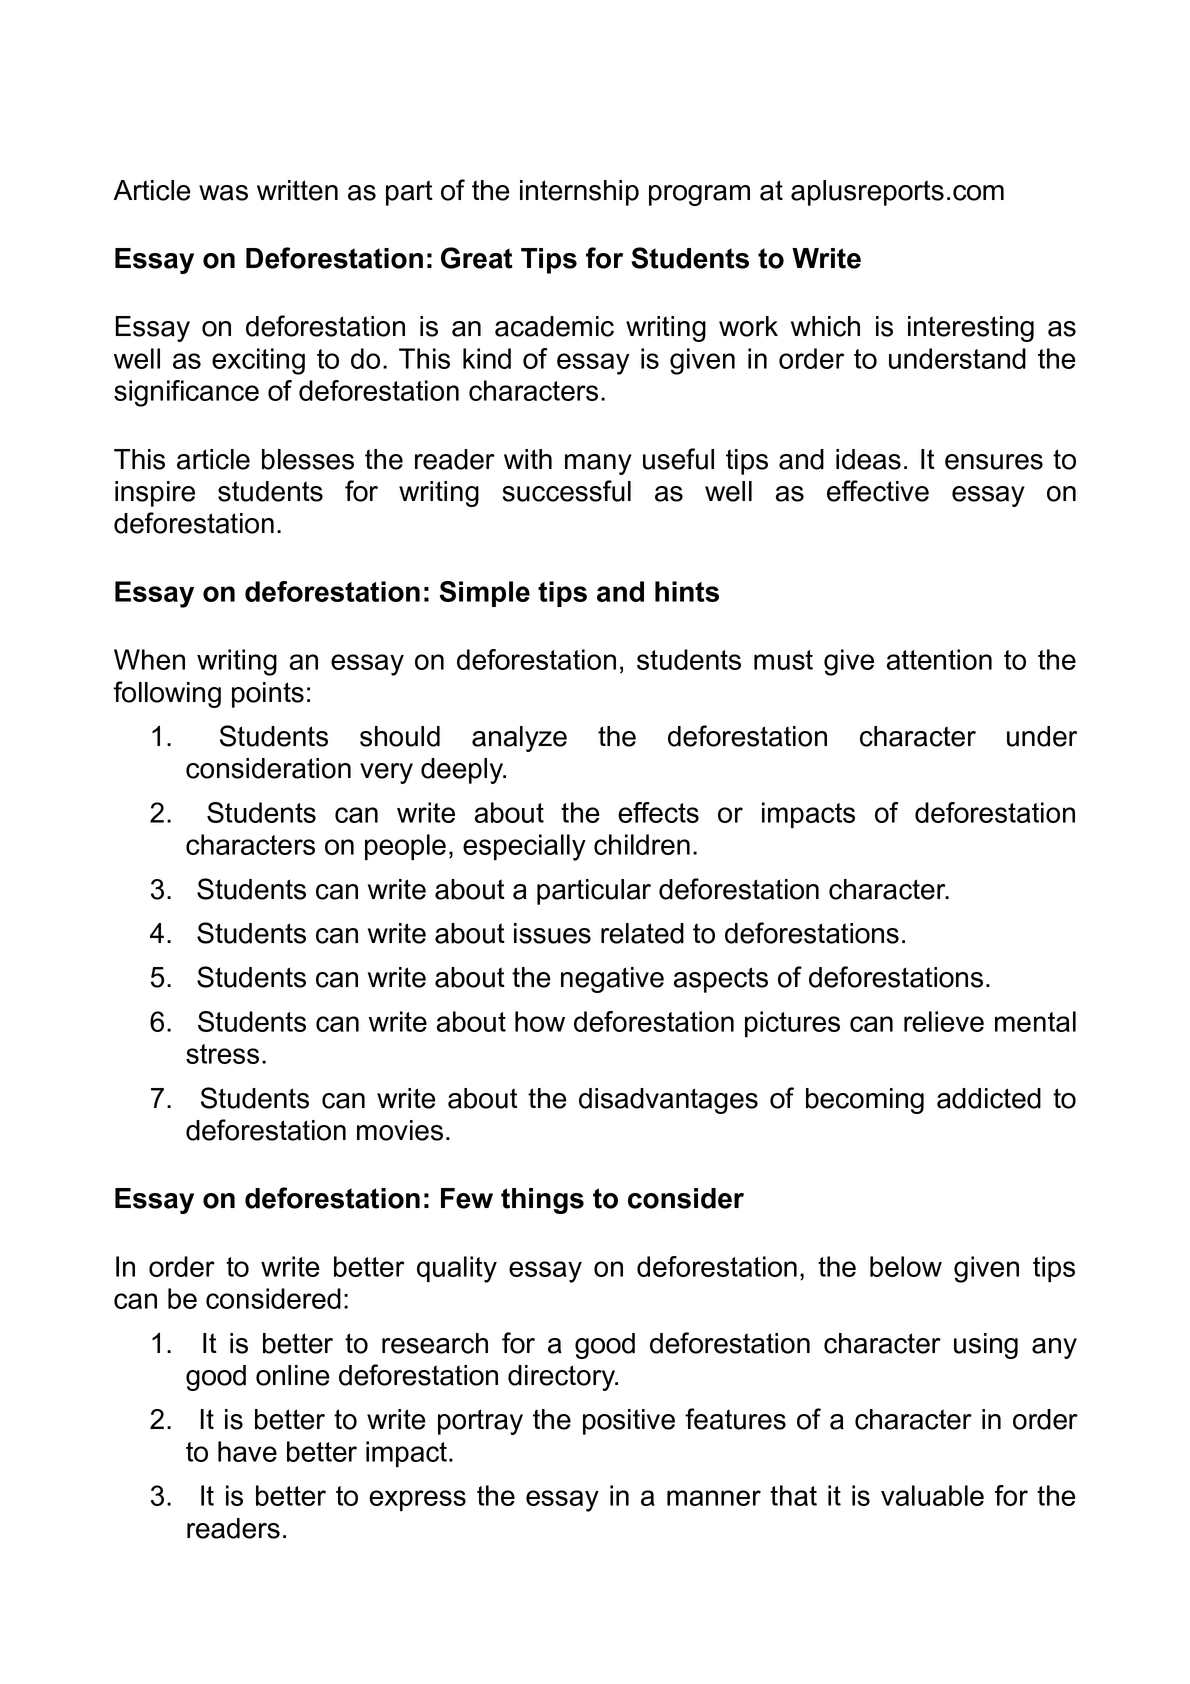 calam eacute o essay on deforestation great tips for students to write